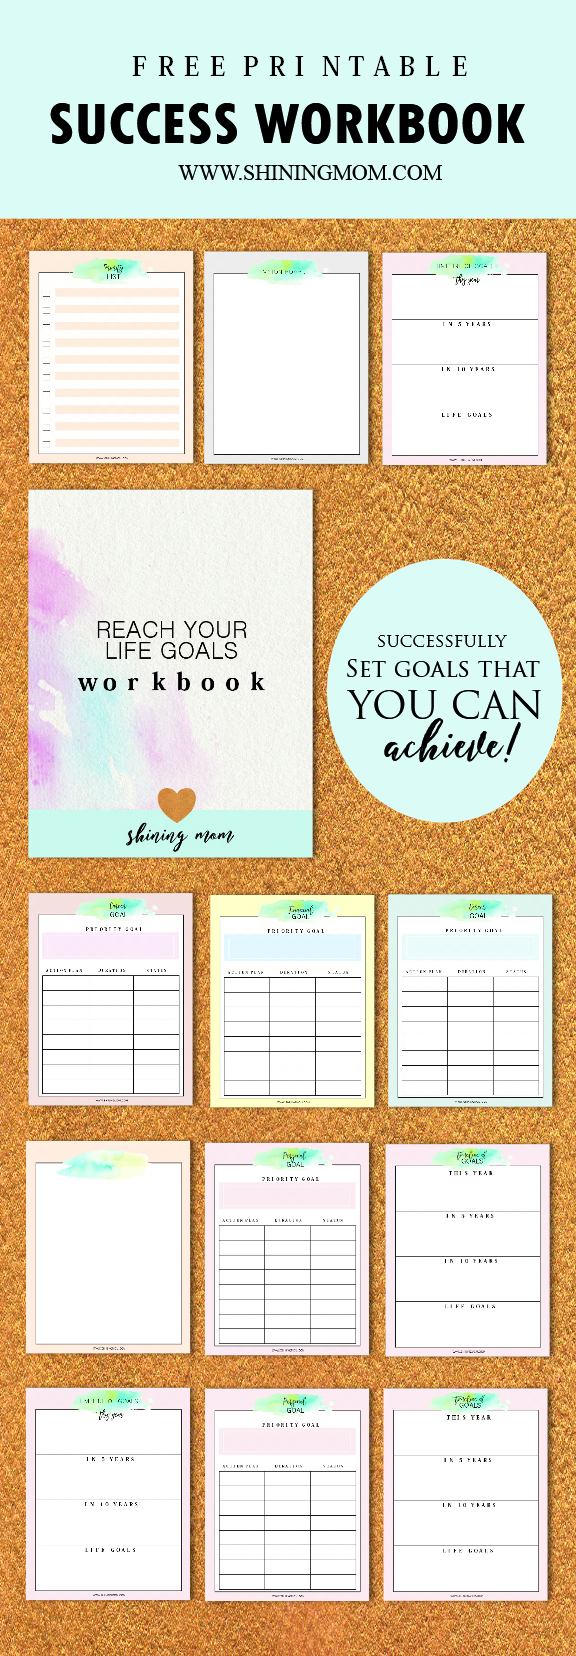 Worksheets Life Goals Worksheet free success workbook achieve your life goals goal setting goals